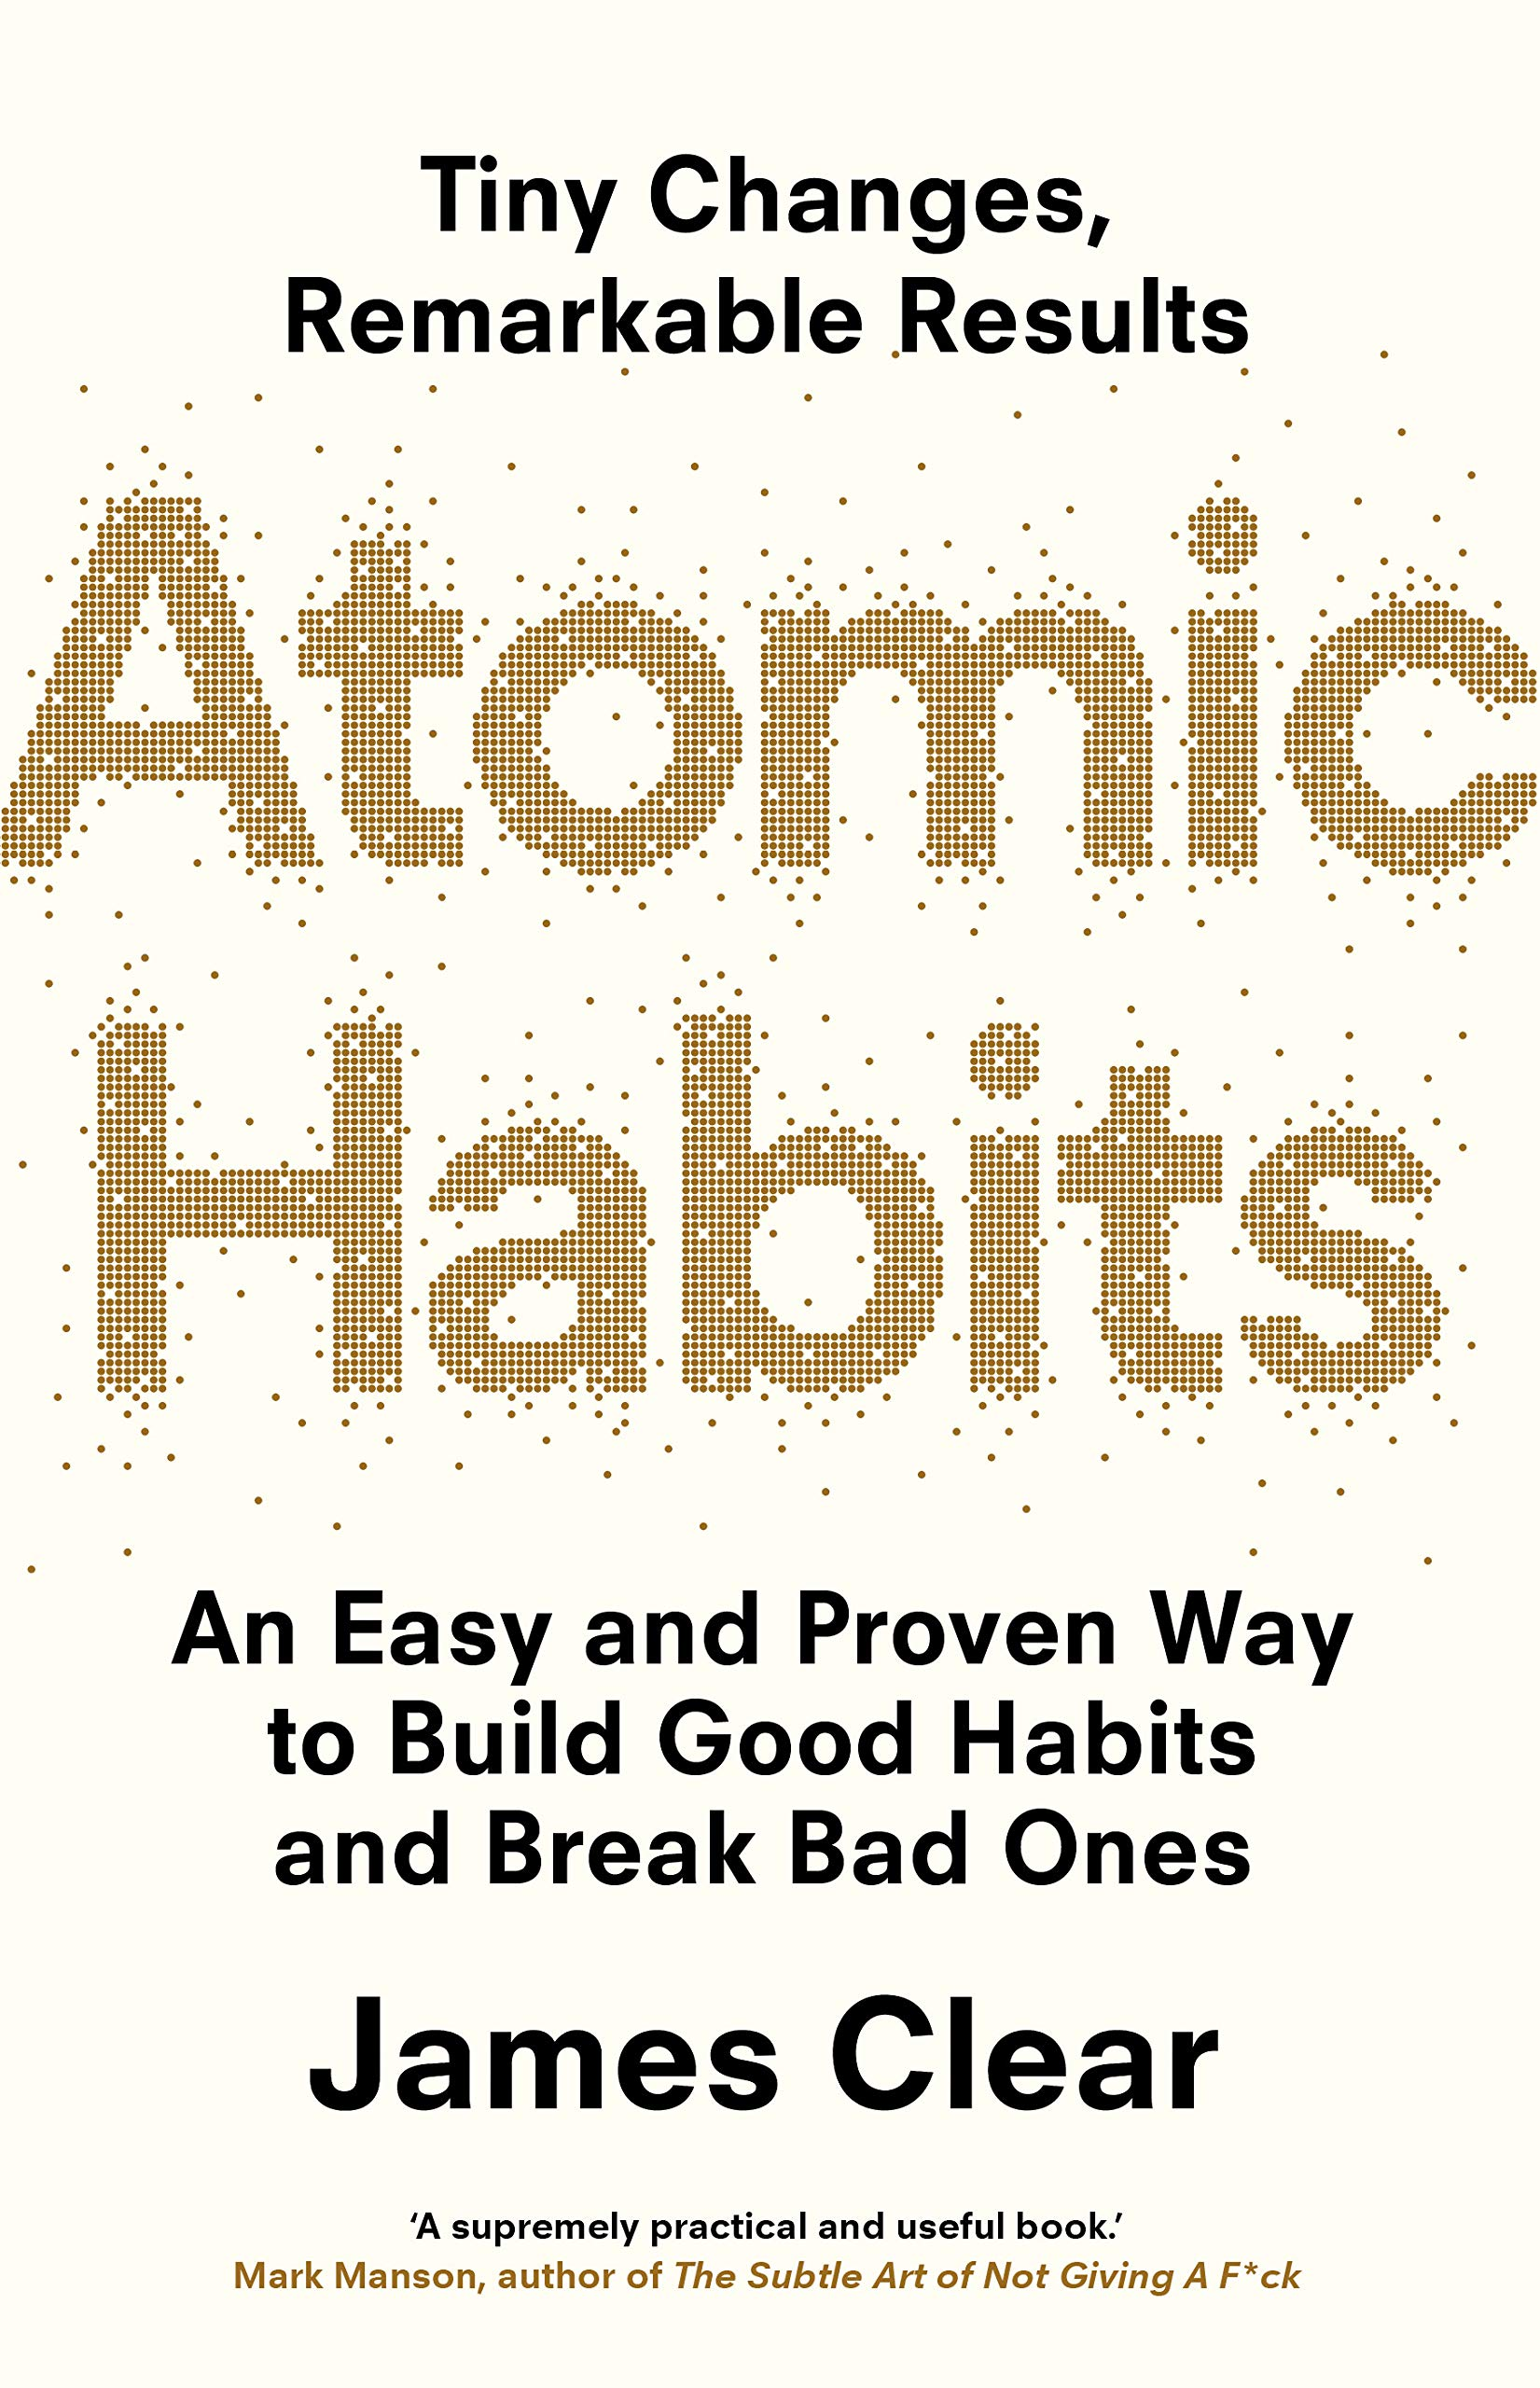 Atomic Habits: An Easy and Proven Way to Build Good Habits and Break Bad  Ones: Amazon.co.uk: James Clear: 9781847941831: Books